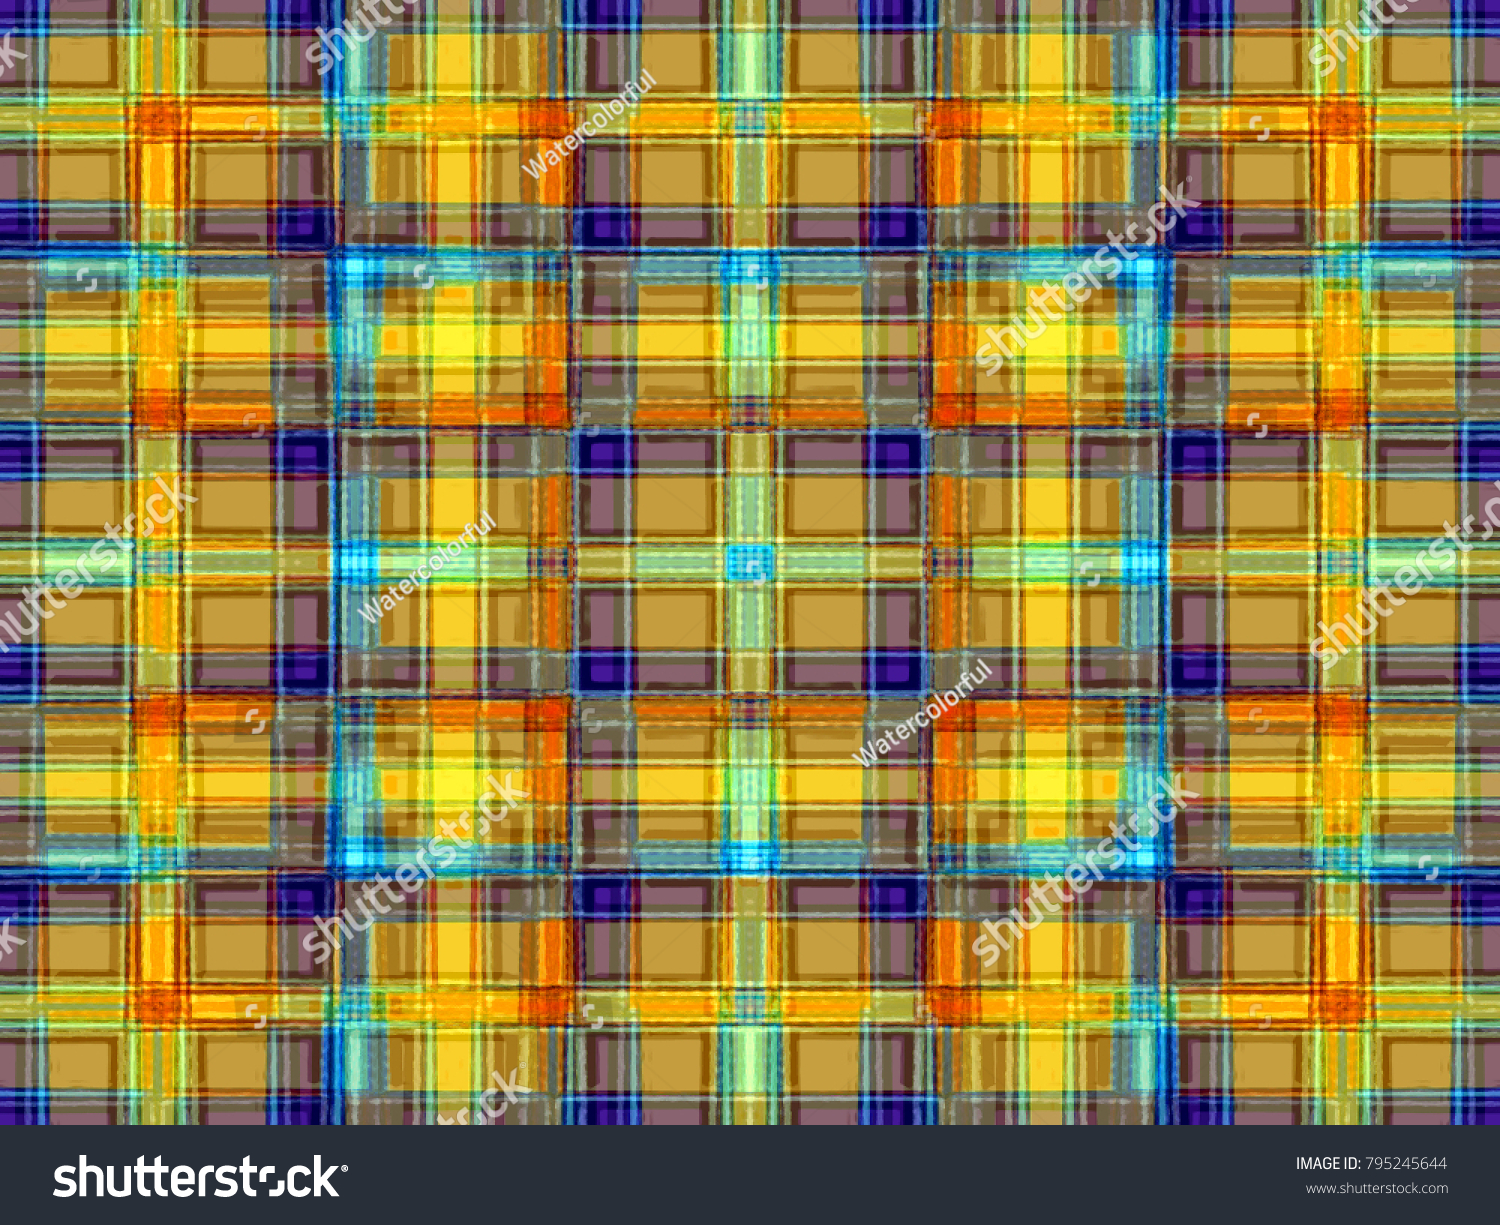 Abstract Design Geometry Simple Colourful Wallpaper Www